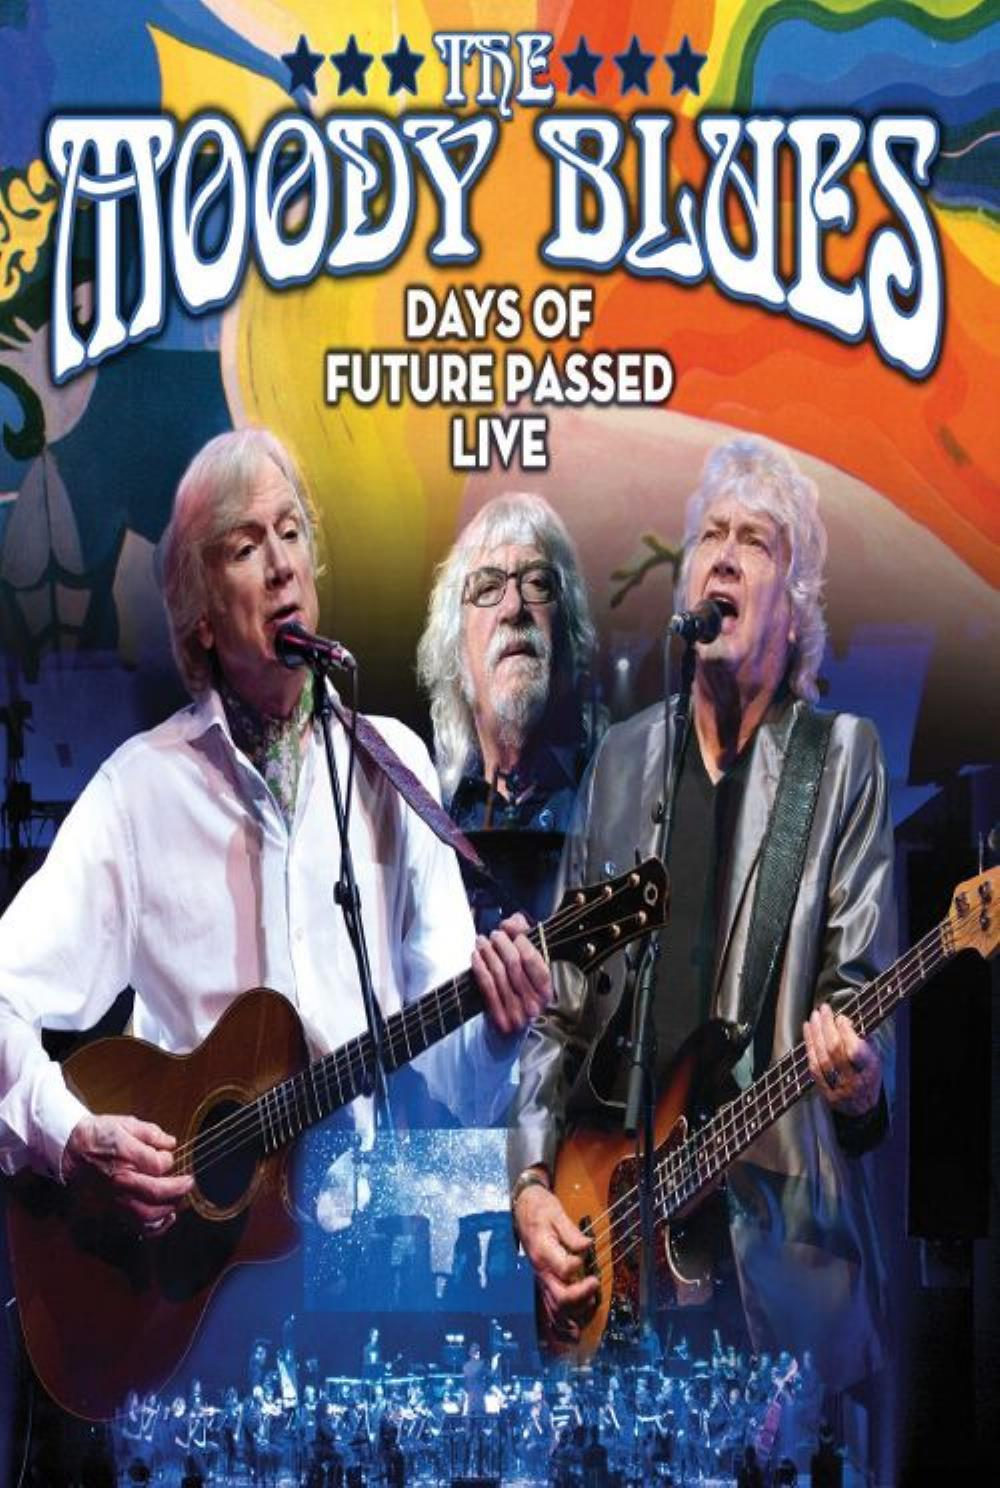 The Moody Blues Days of Future Passed Live album cover